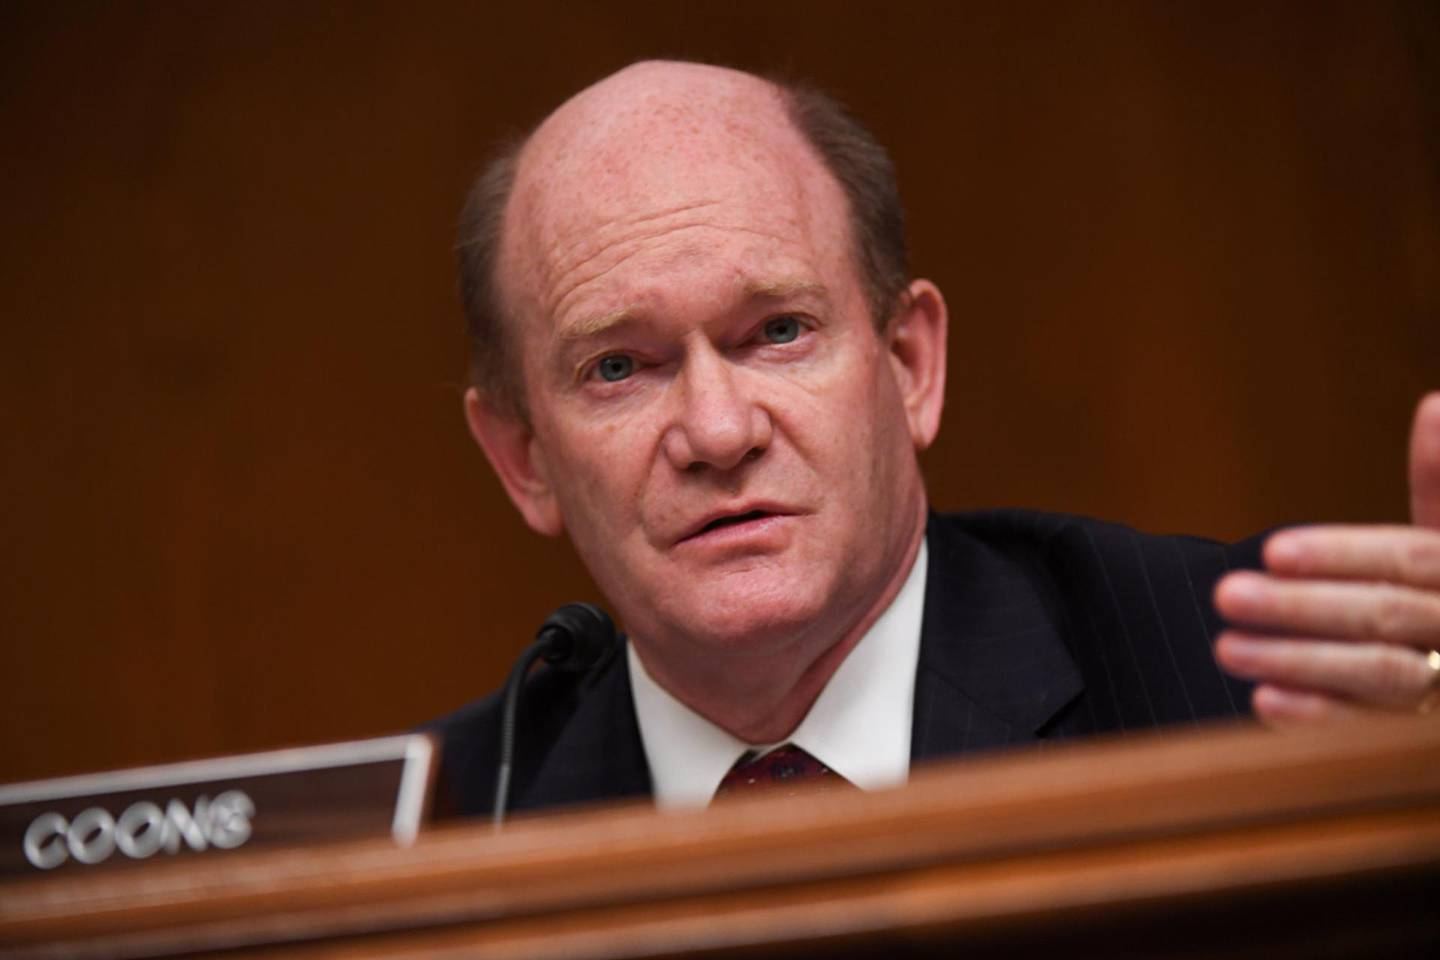 FILE PHOTO: Senator Chris Coons (D-DE) questions Ajit Pai, Chairman of the Federal Communications Commission, during an oversight hearing  on Capitol Hill in Washington, D.C., U.S., June 16, 2020. Toni Sandys/Pool via REUTERS/File Photo